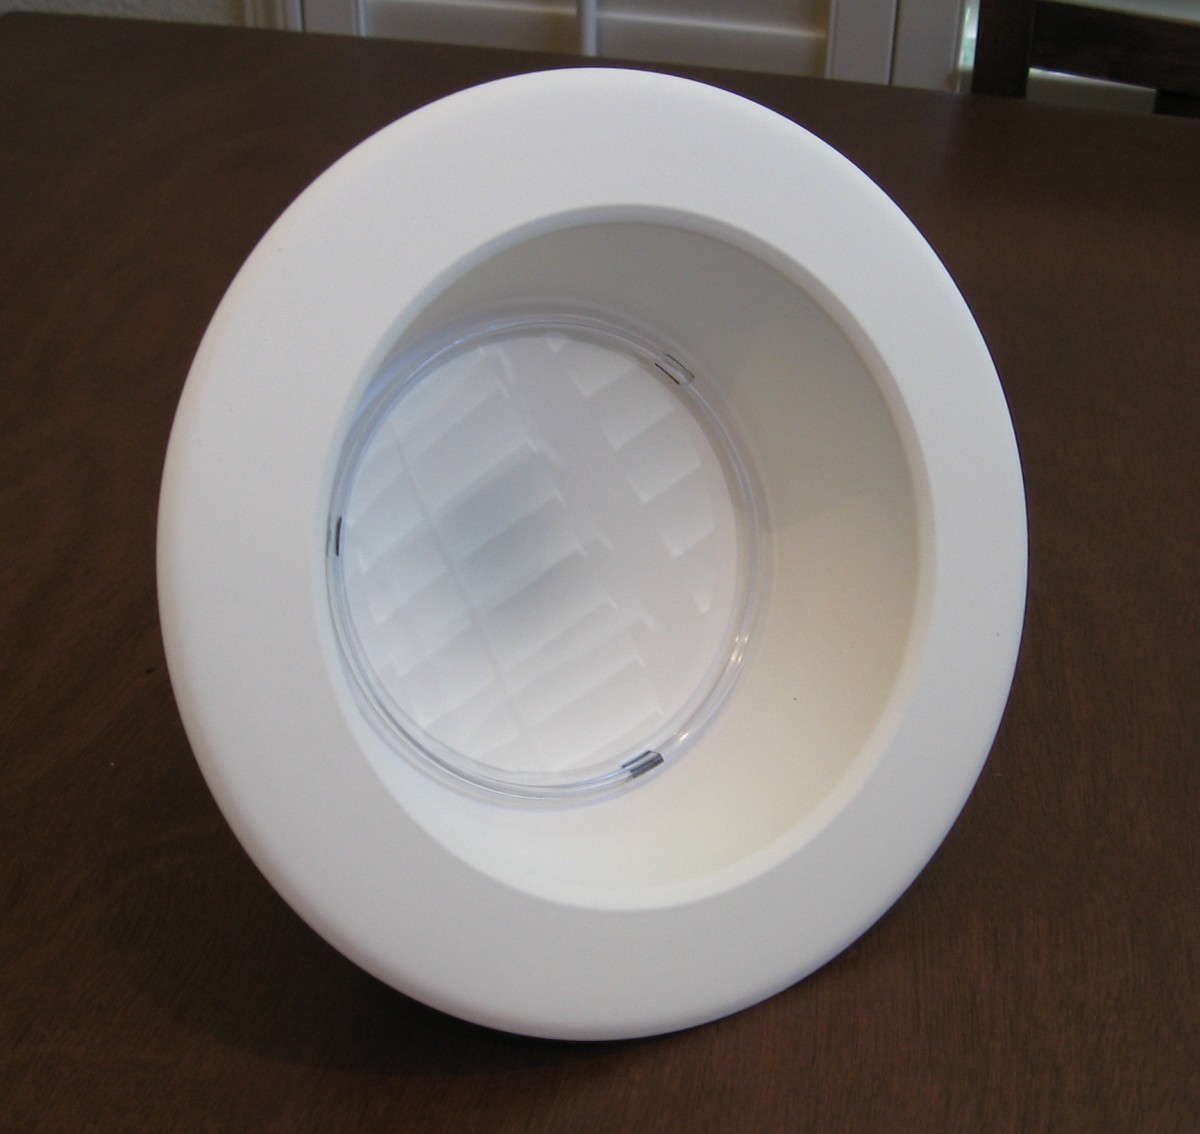 ecosmart-6-led-downlight-review-and-installation-a-homes-delight